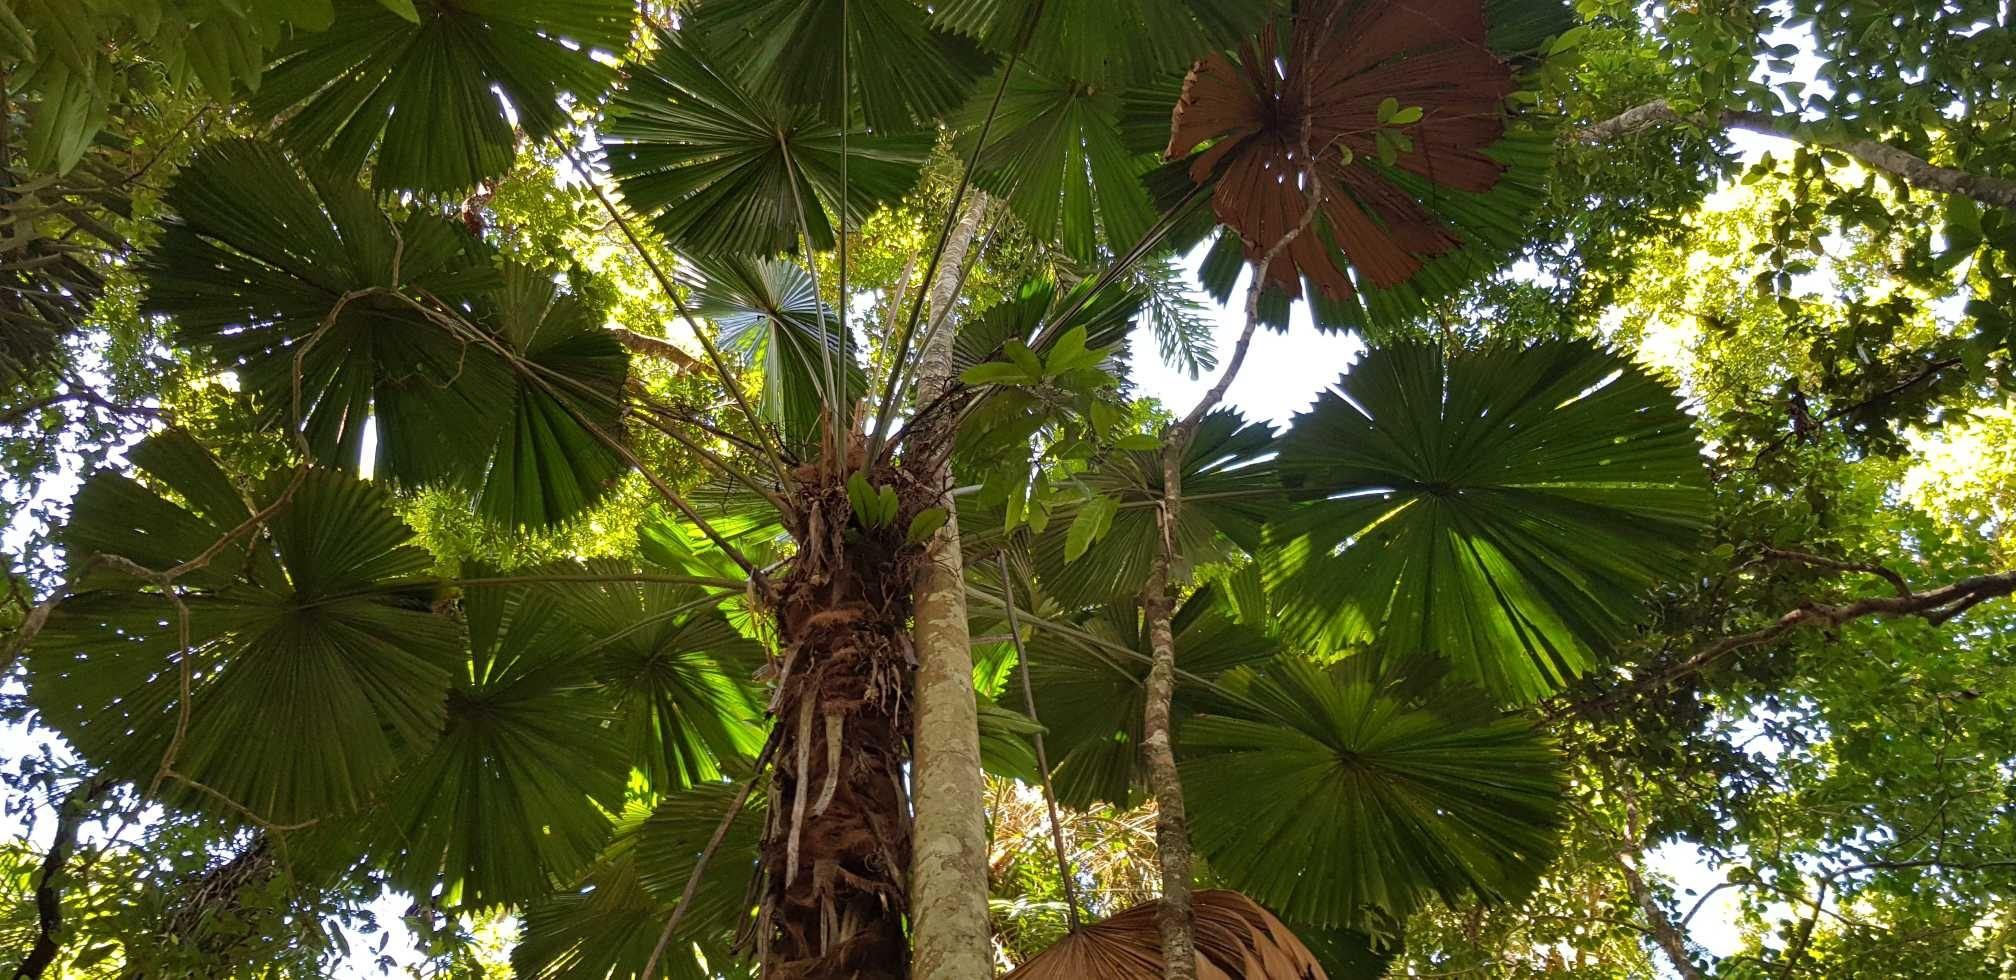 Fan palms in the Daintree rainforest